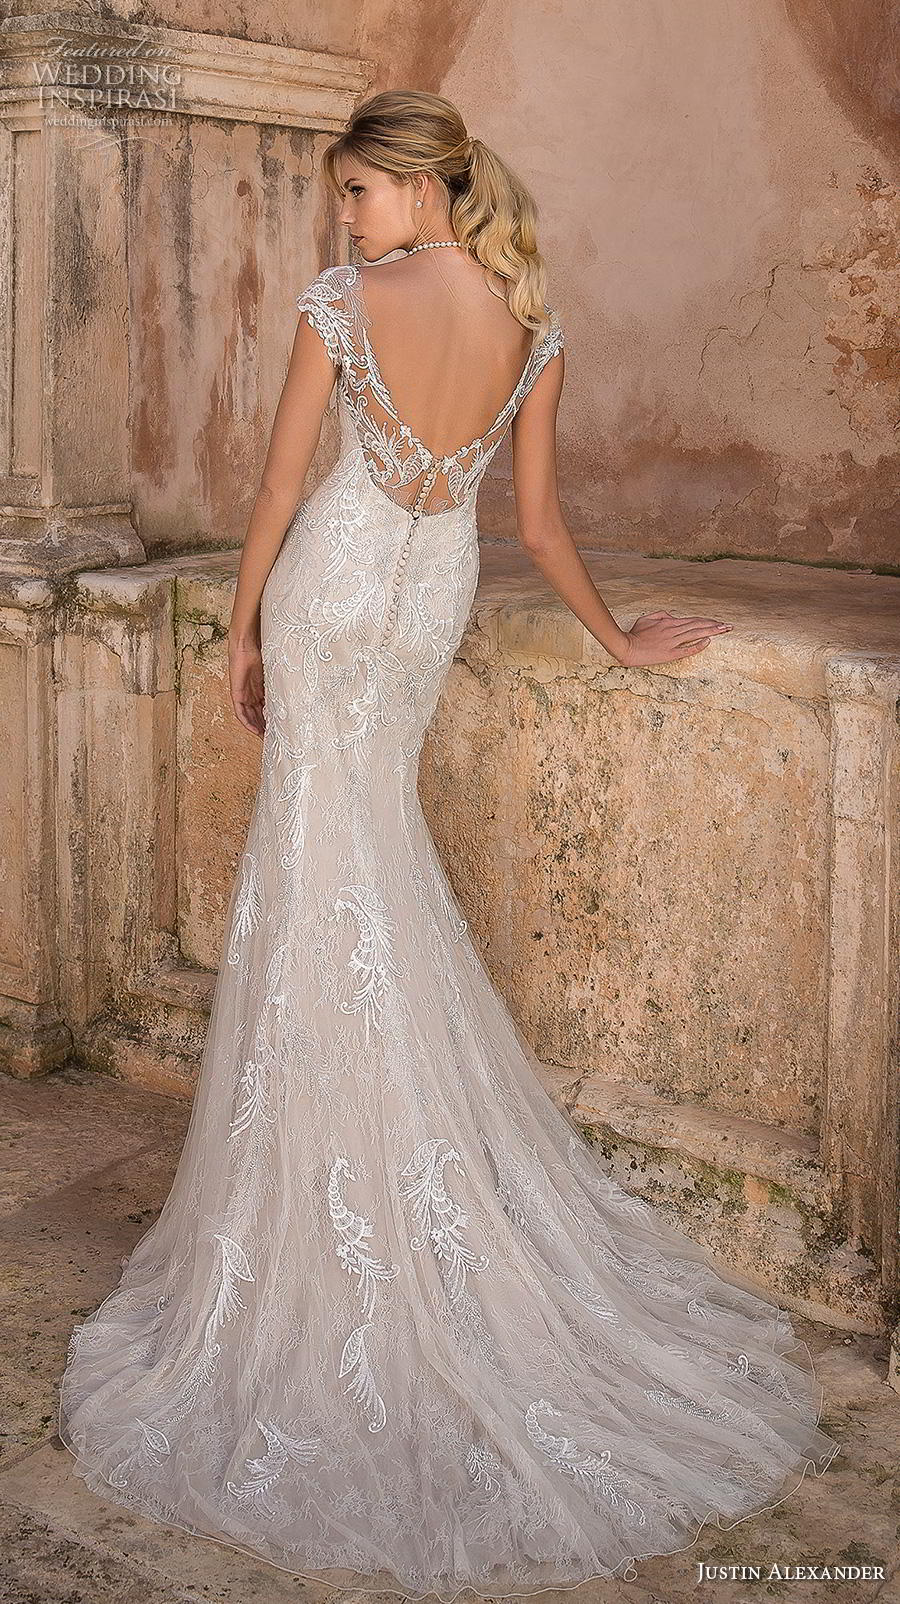 justin alexander spring 2019 bridal cap sleeves illusion bateau sweetheart neckline full embellishment elegant glamorous fit and flare sheath wedding dress backless v back medium train (11) bv